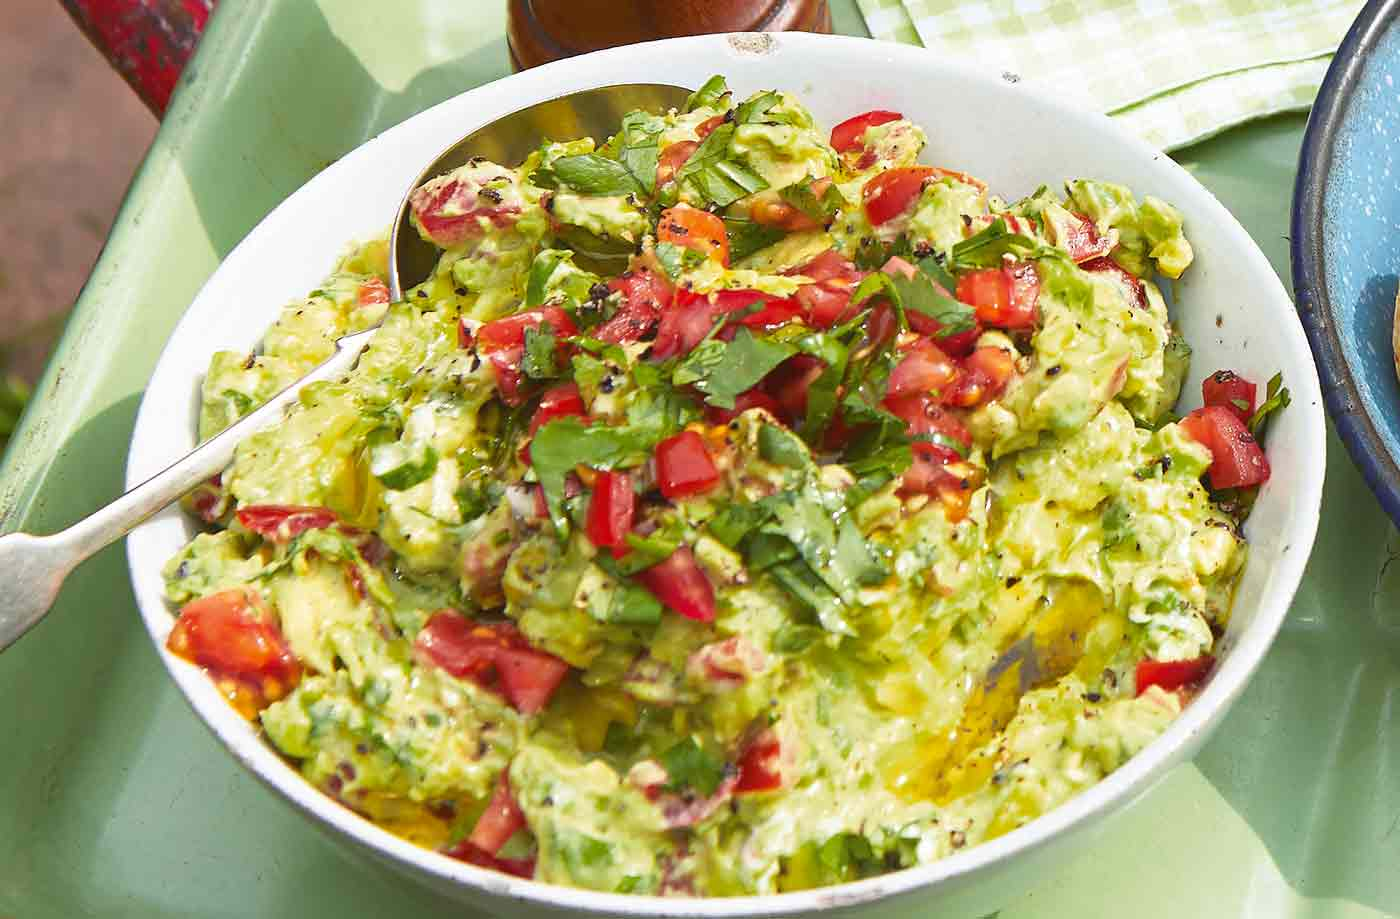 Smashed avocado dip